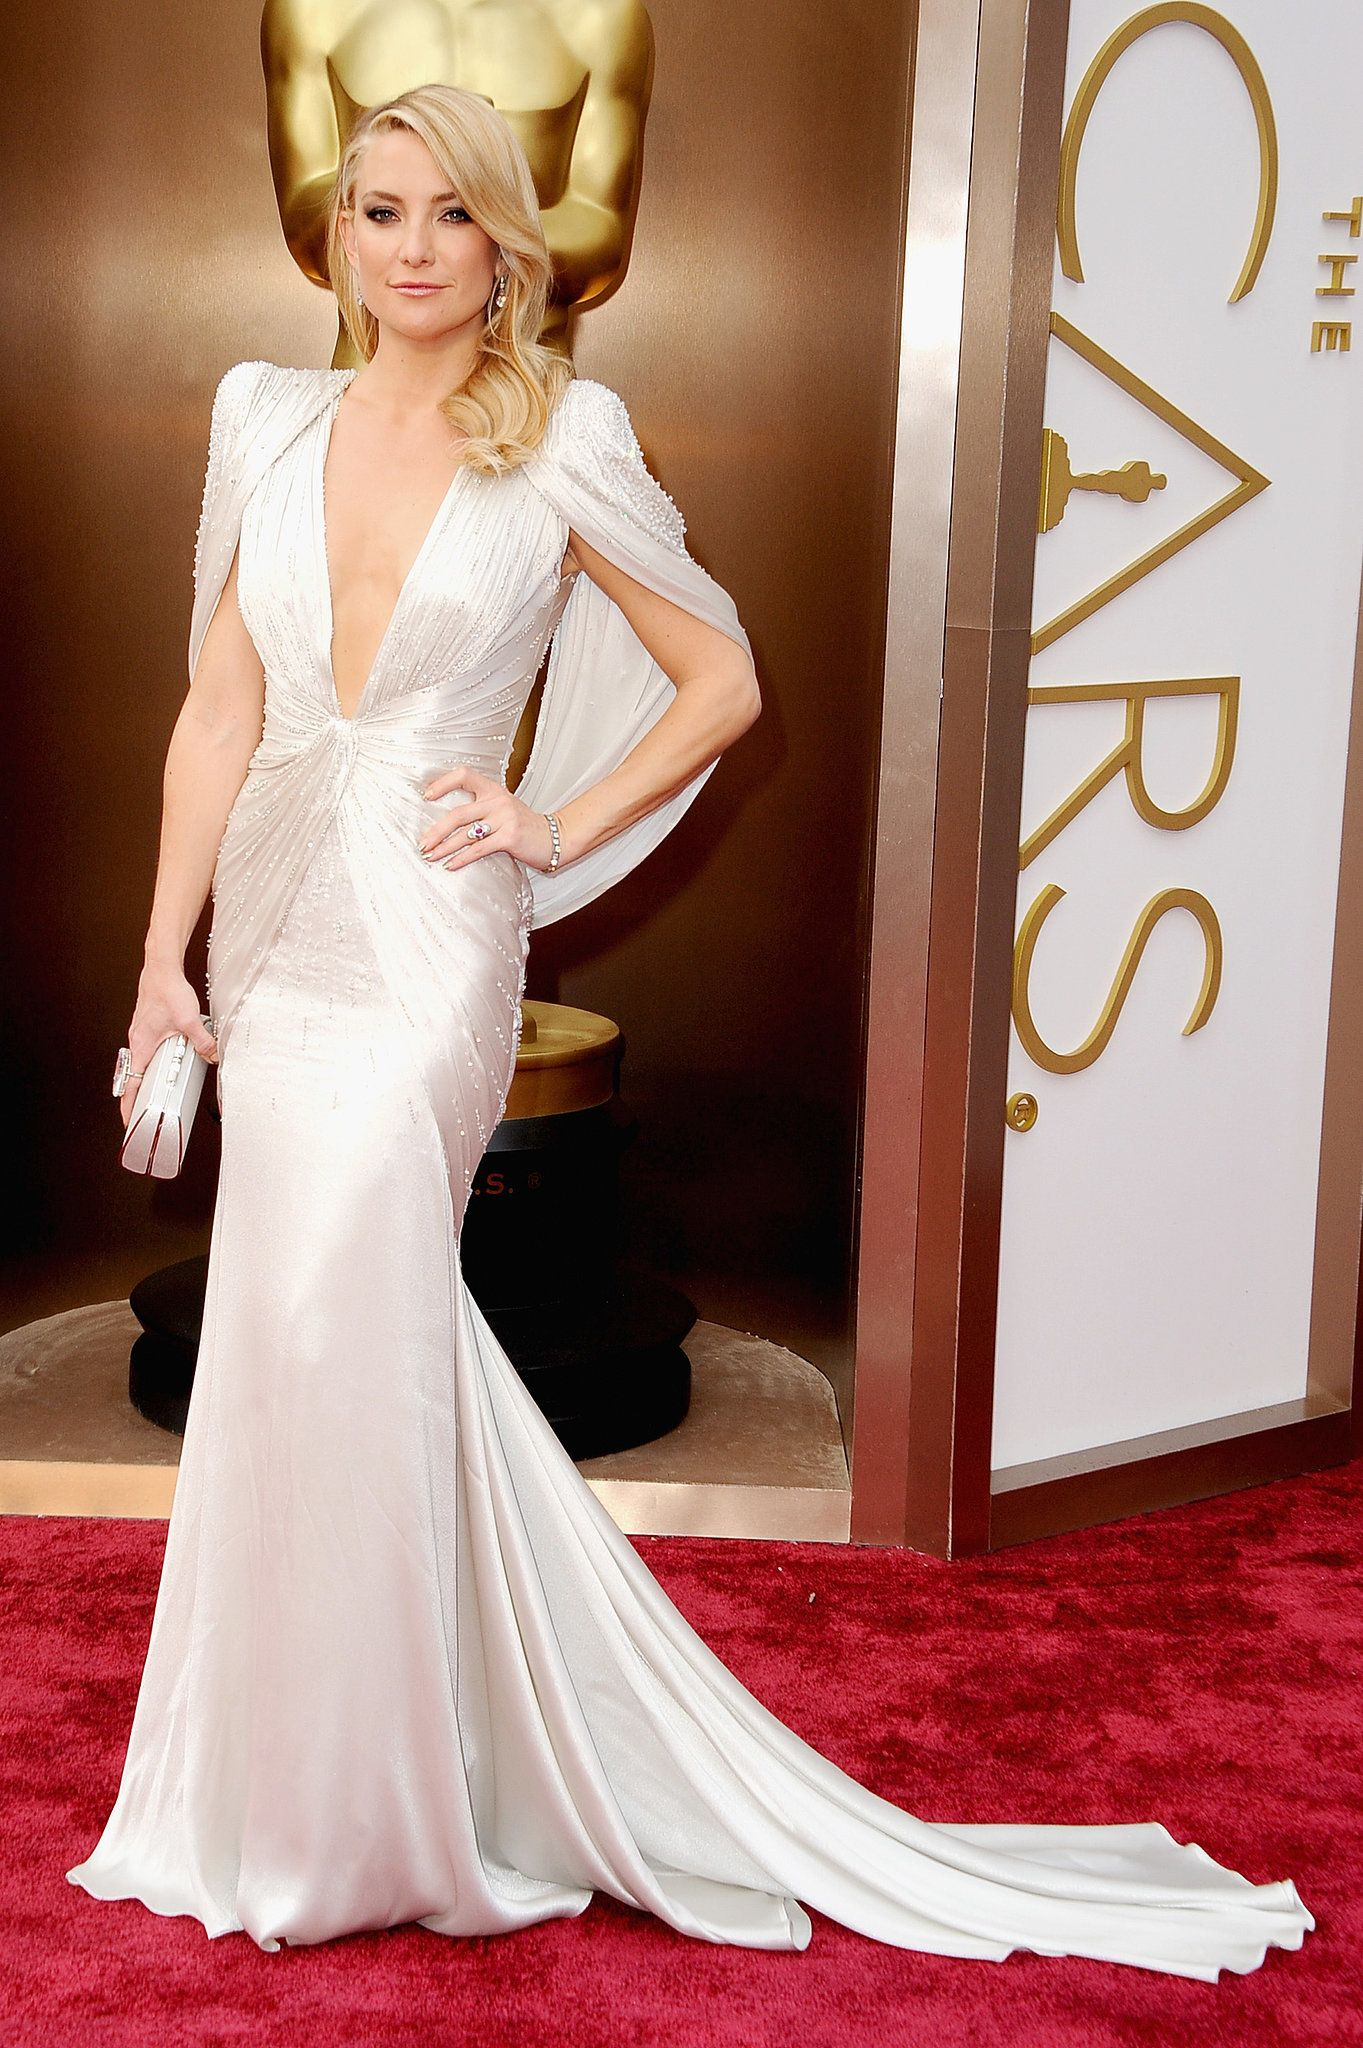 Kate Hudson at the 2014 Oscars | Kate hudson, Hollywood glamour and